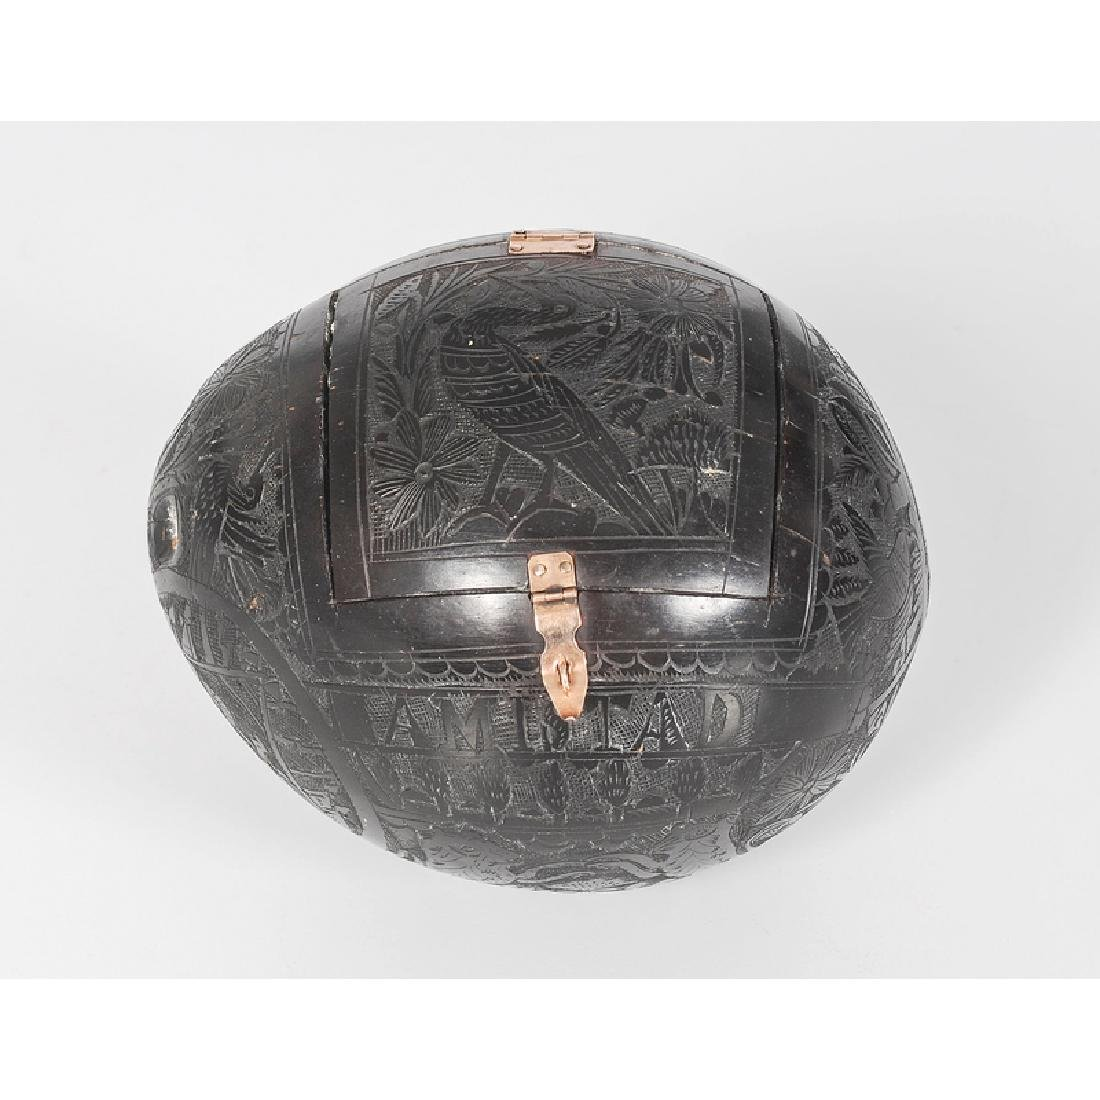 Carved Coconut Bank with Gold Settings